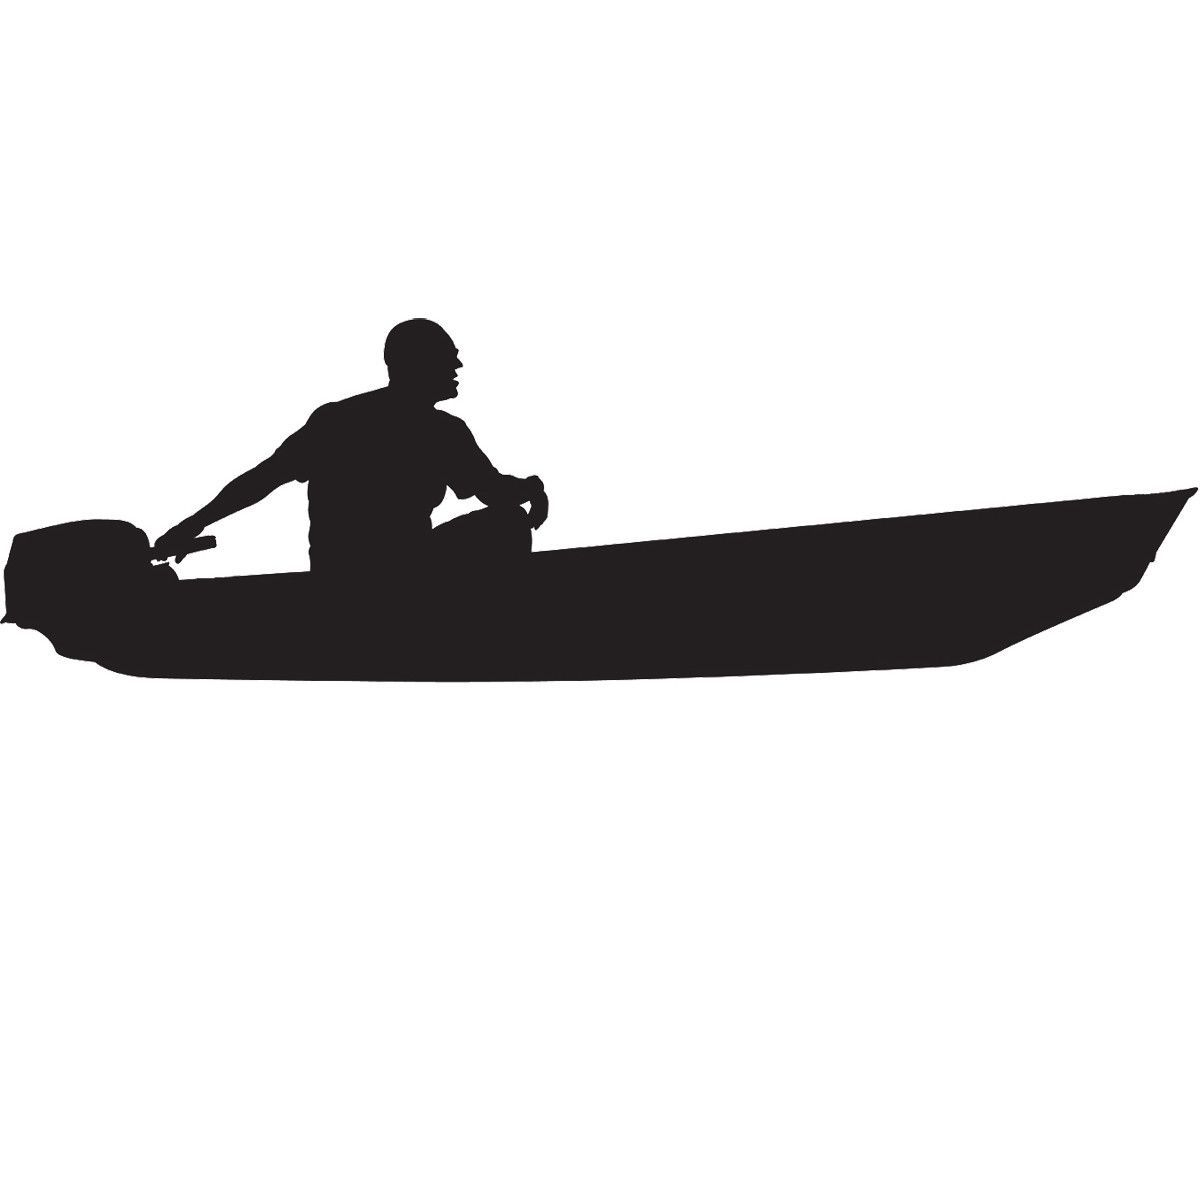 Jon decals vinyl graphics. Boat clipart skiff